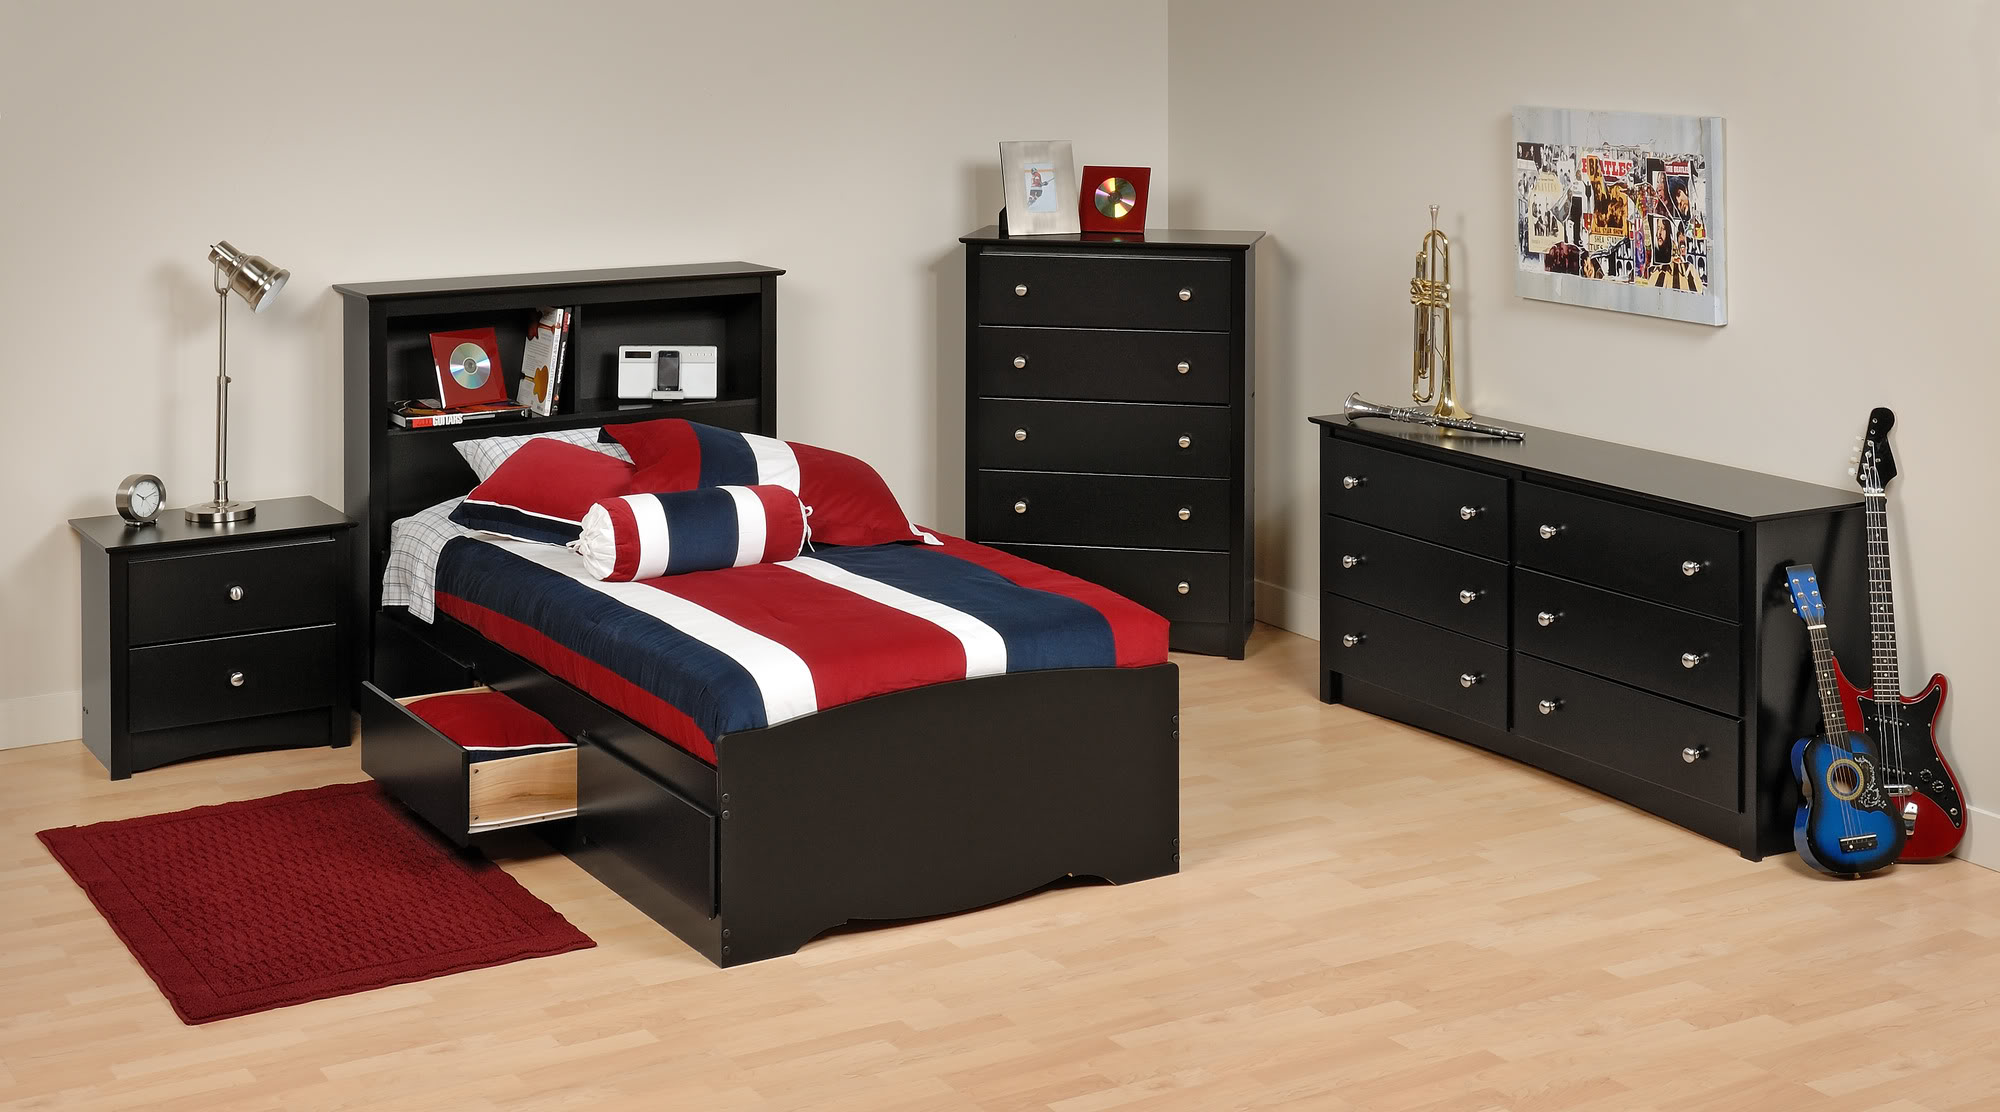 Prepac Sonoma Black Twin Wood Platform Storage Bed 4 Piece Bedroom Set    Walmart.com